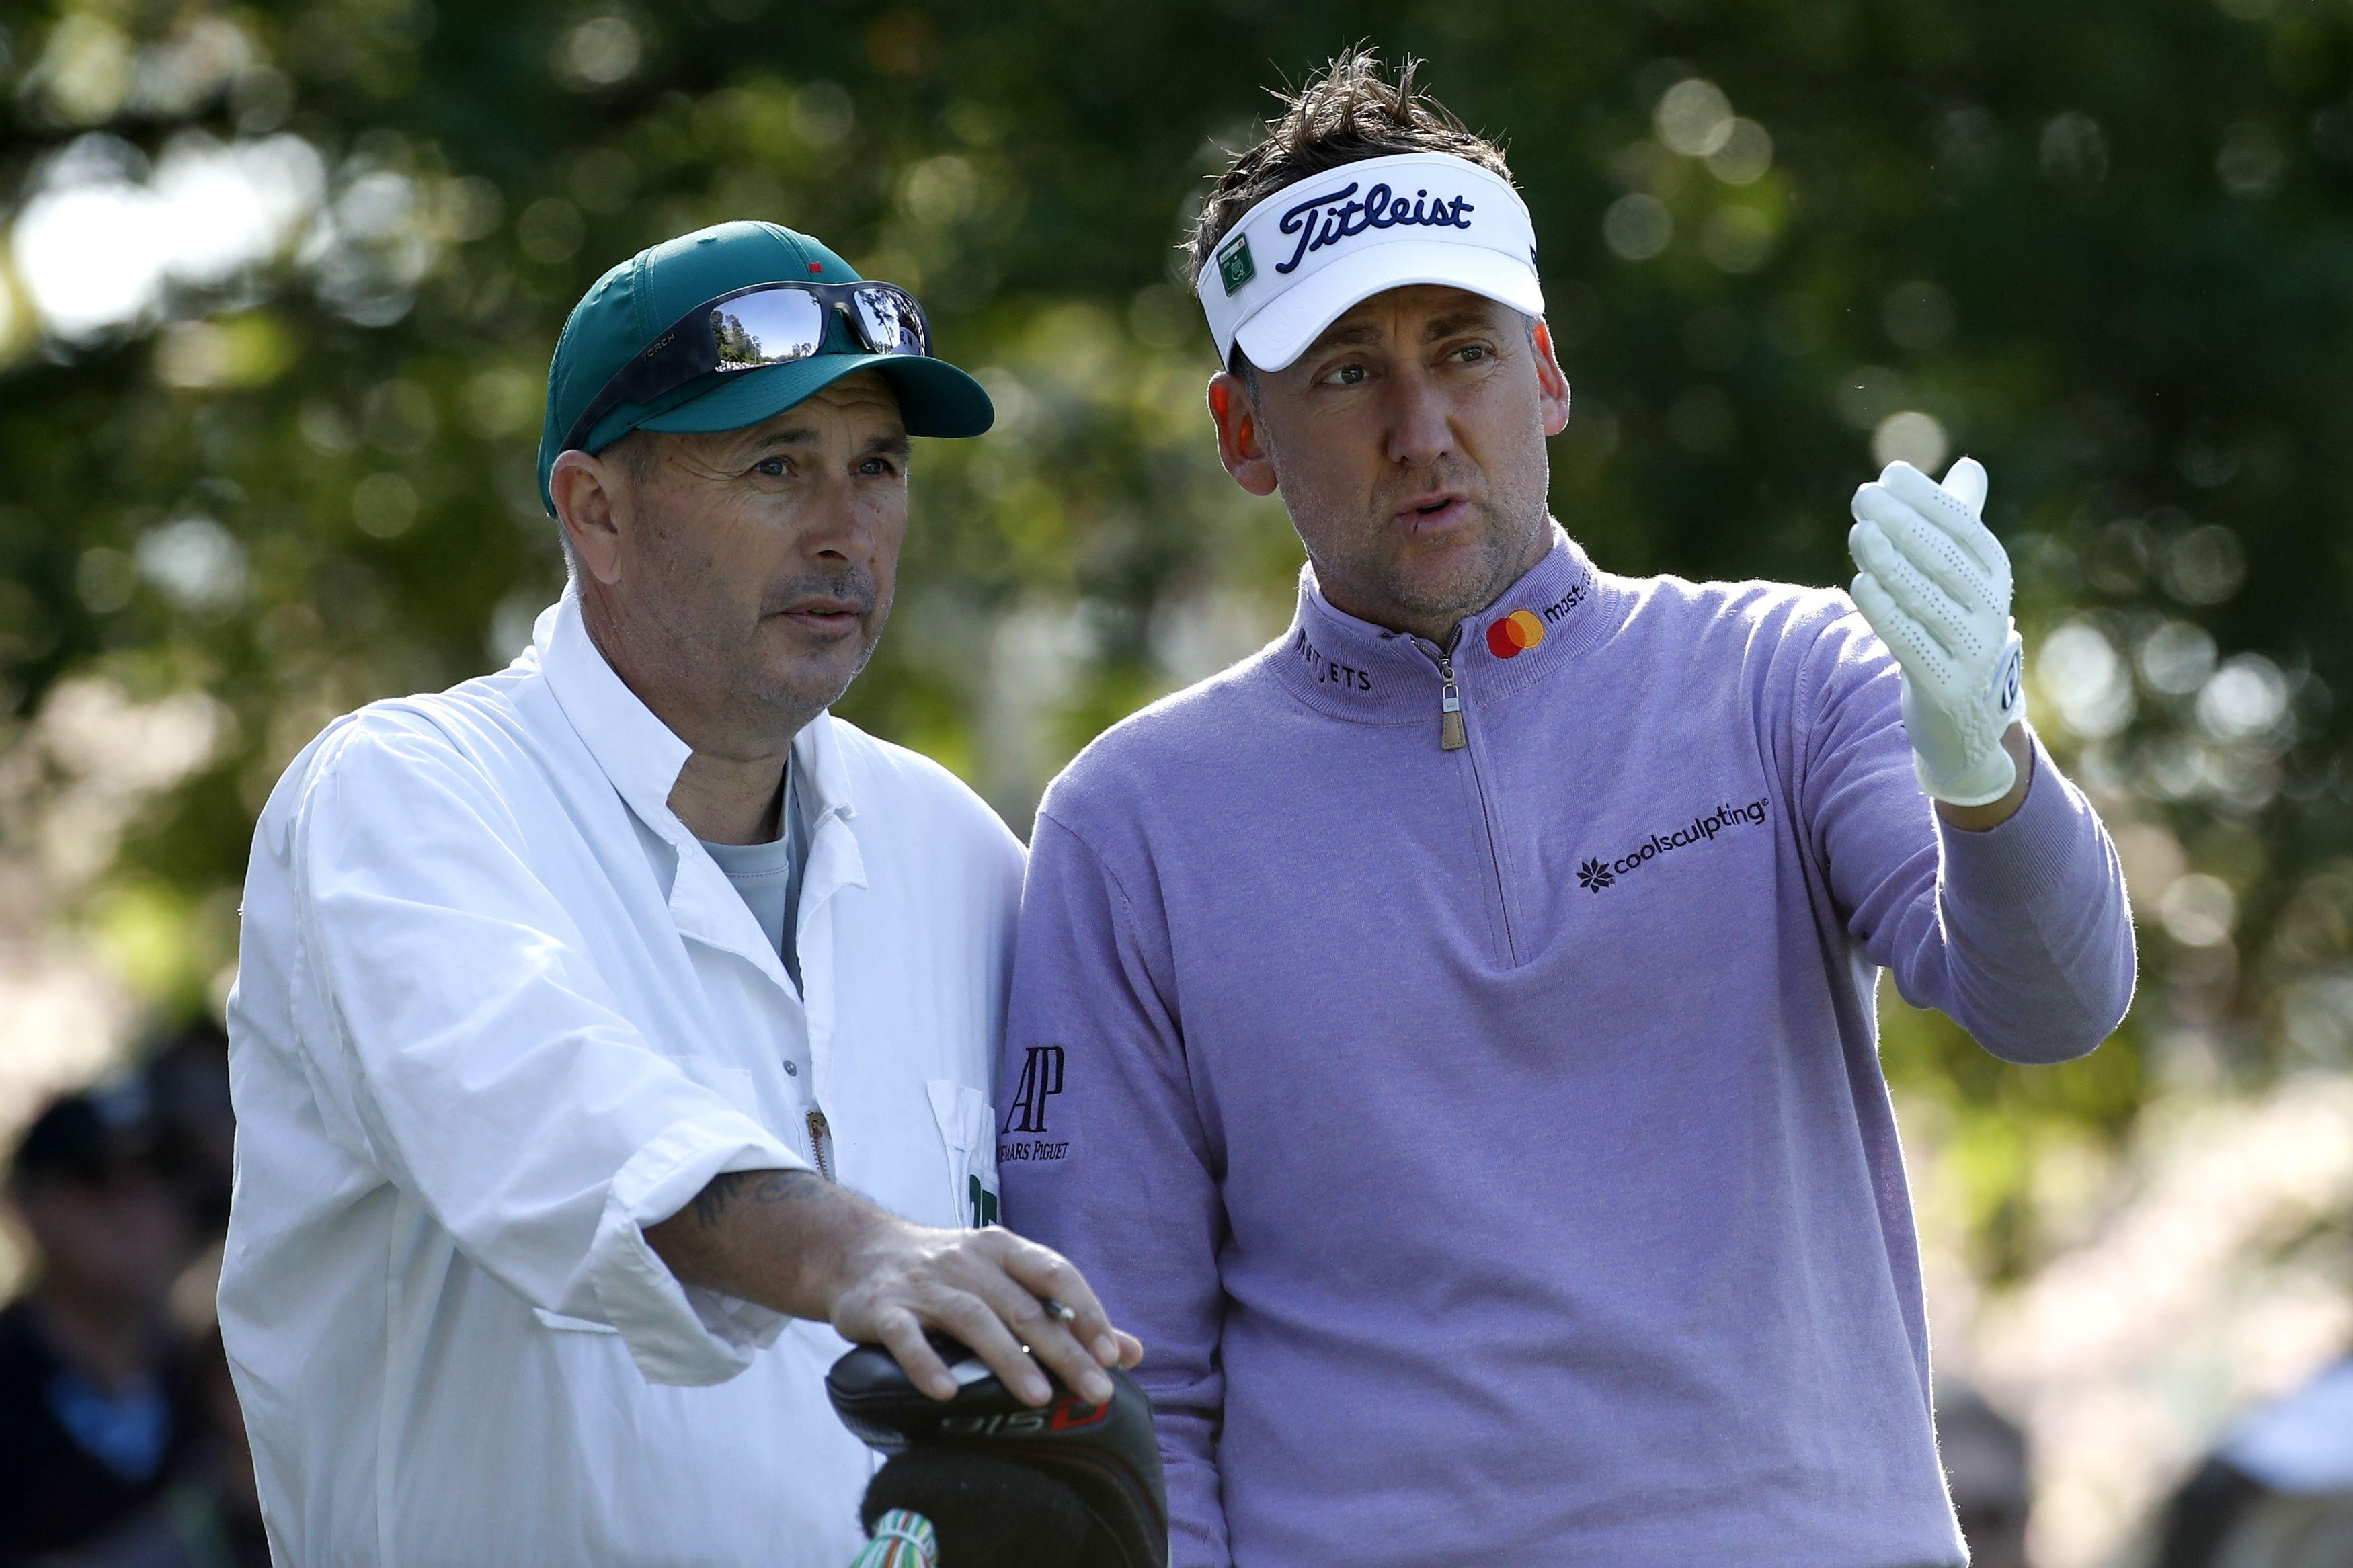 Ian Poulter was fuming at twice being put on the clock